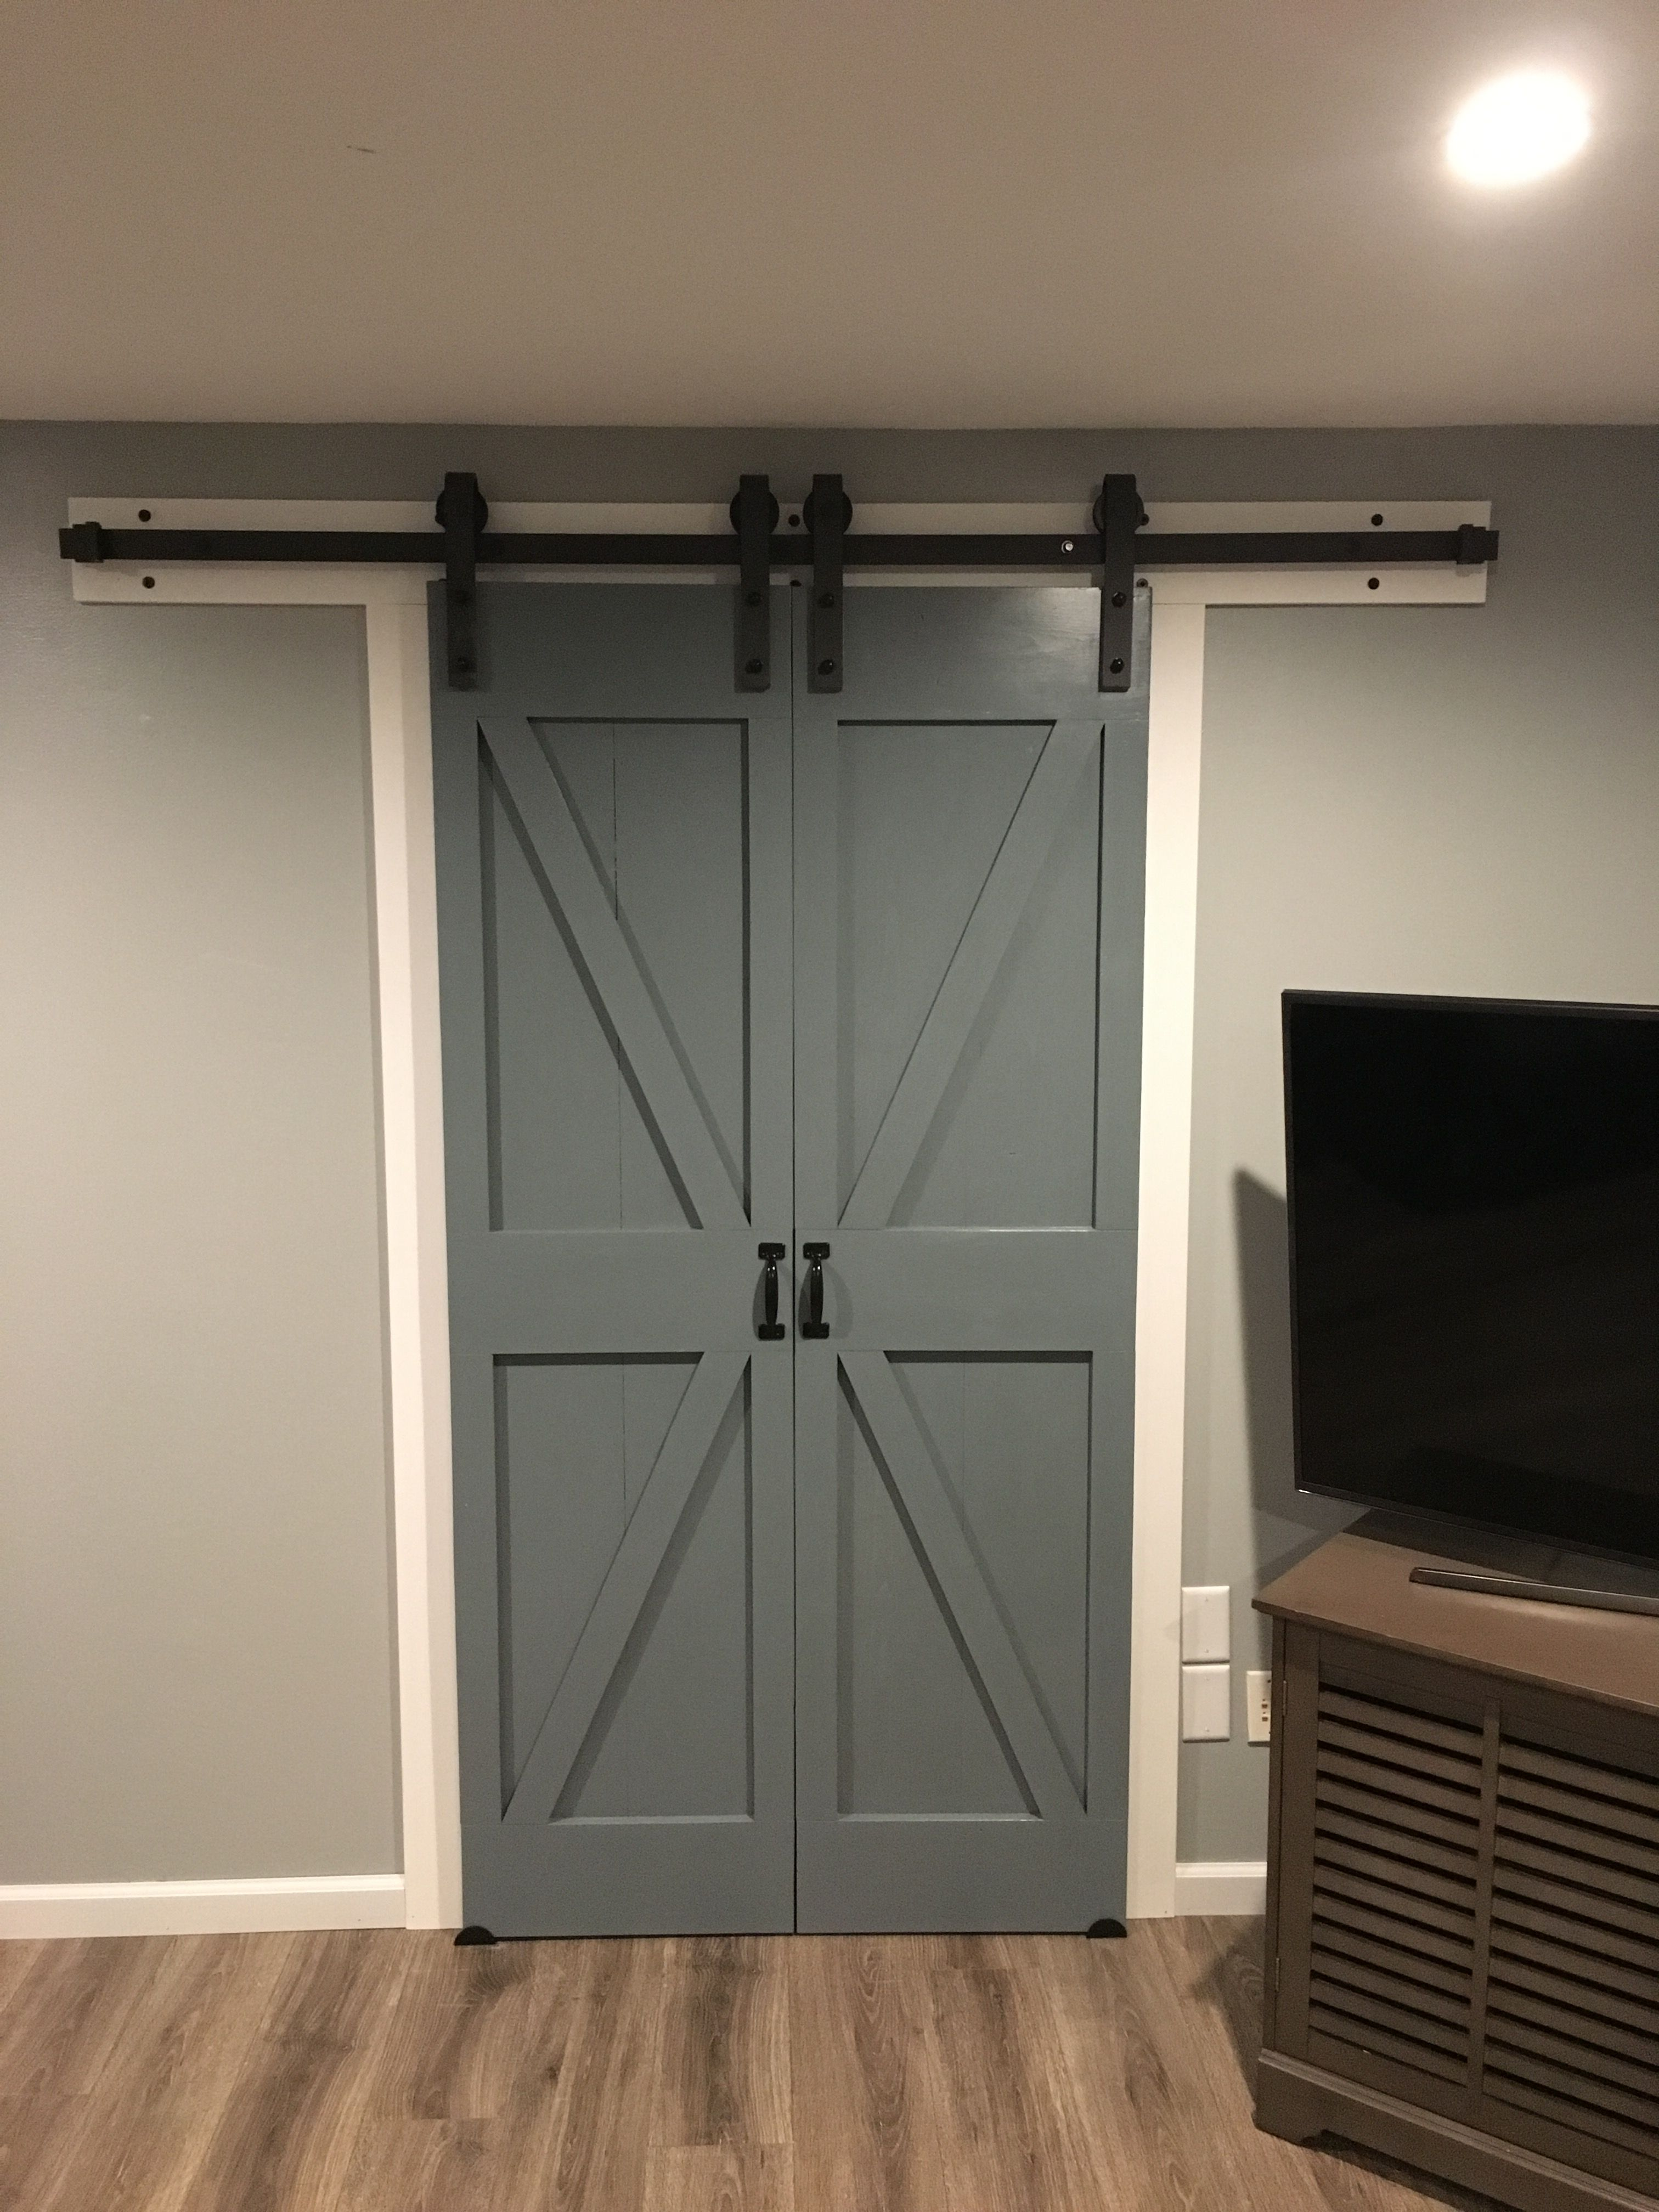 Double Barn Doors For A Closet In Our House Double Barn Doors